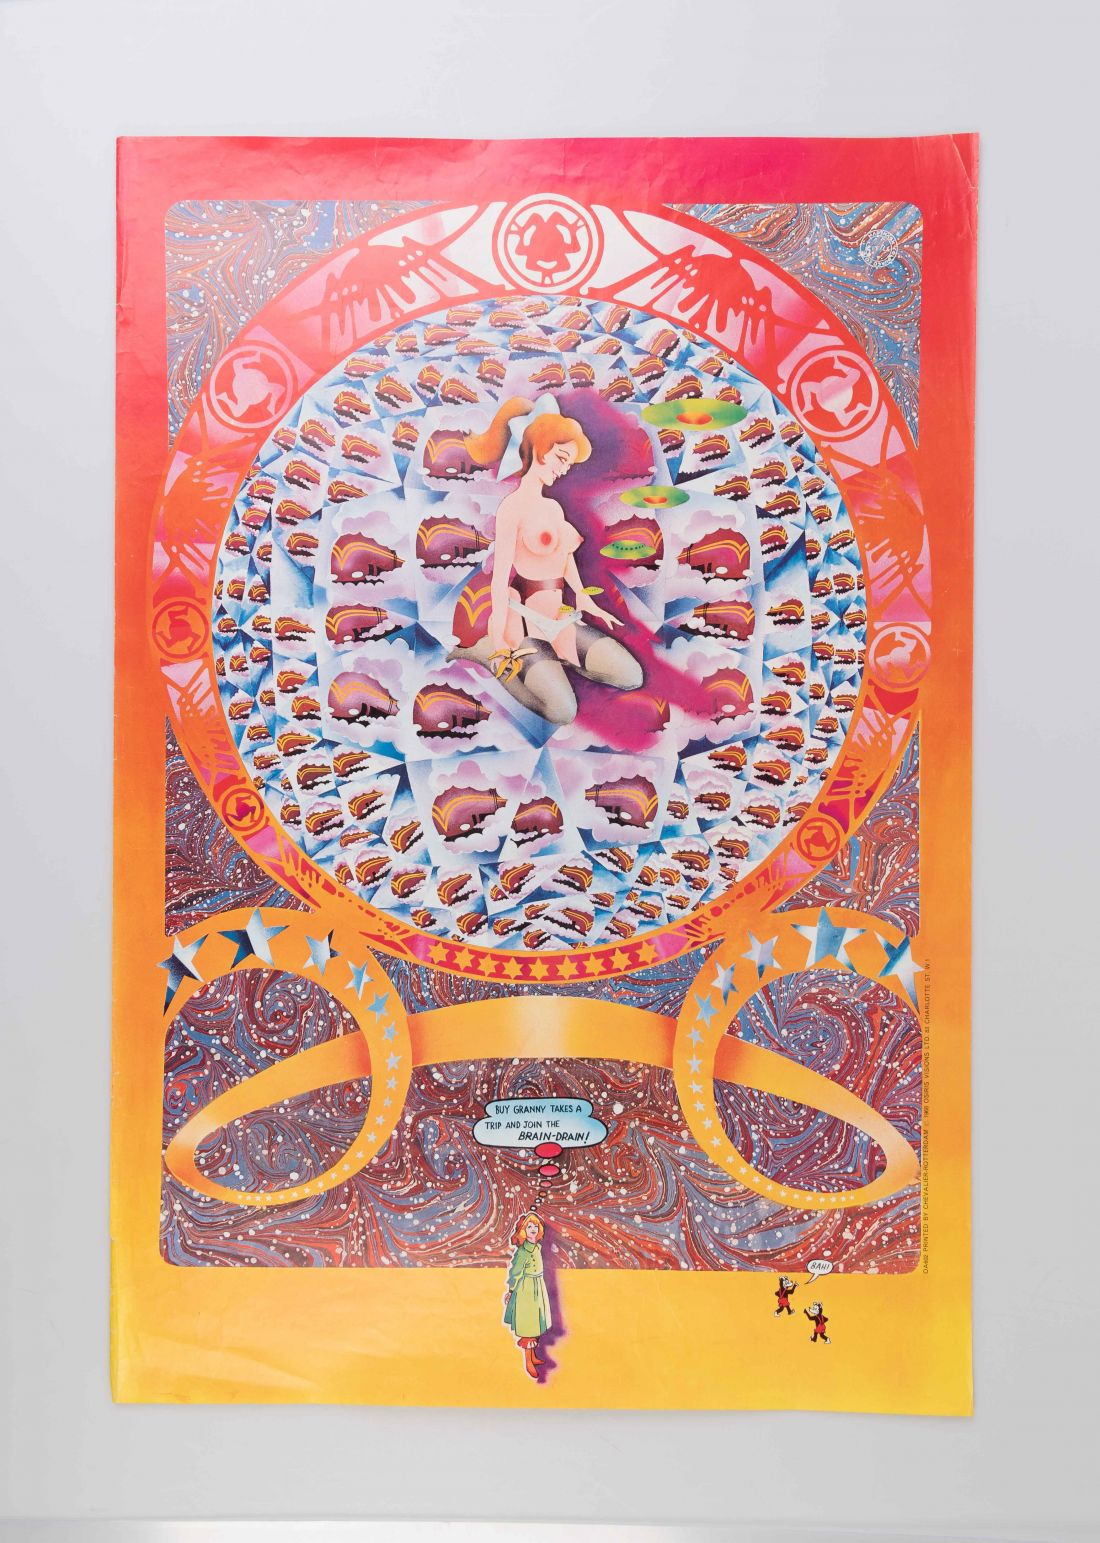 Granny Takes a Trip Advertising poster (1996). Private Collection: not for sale.